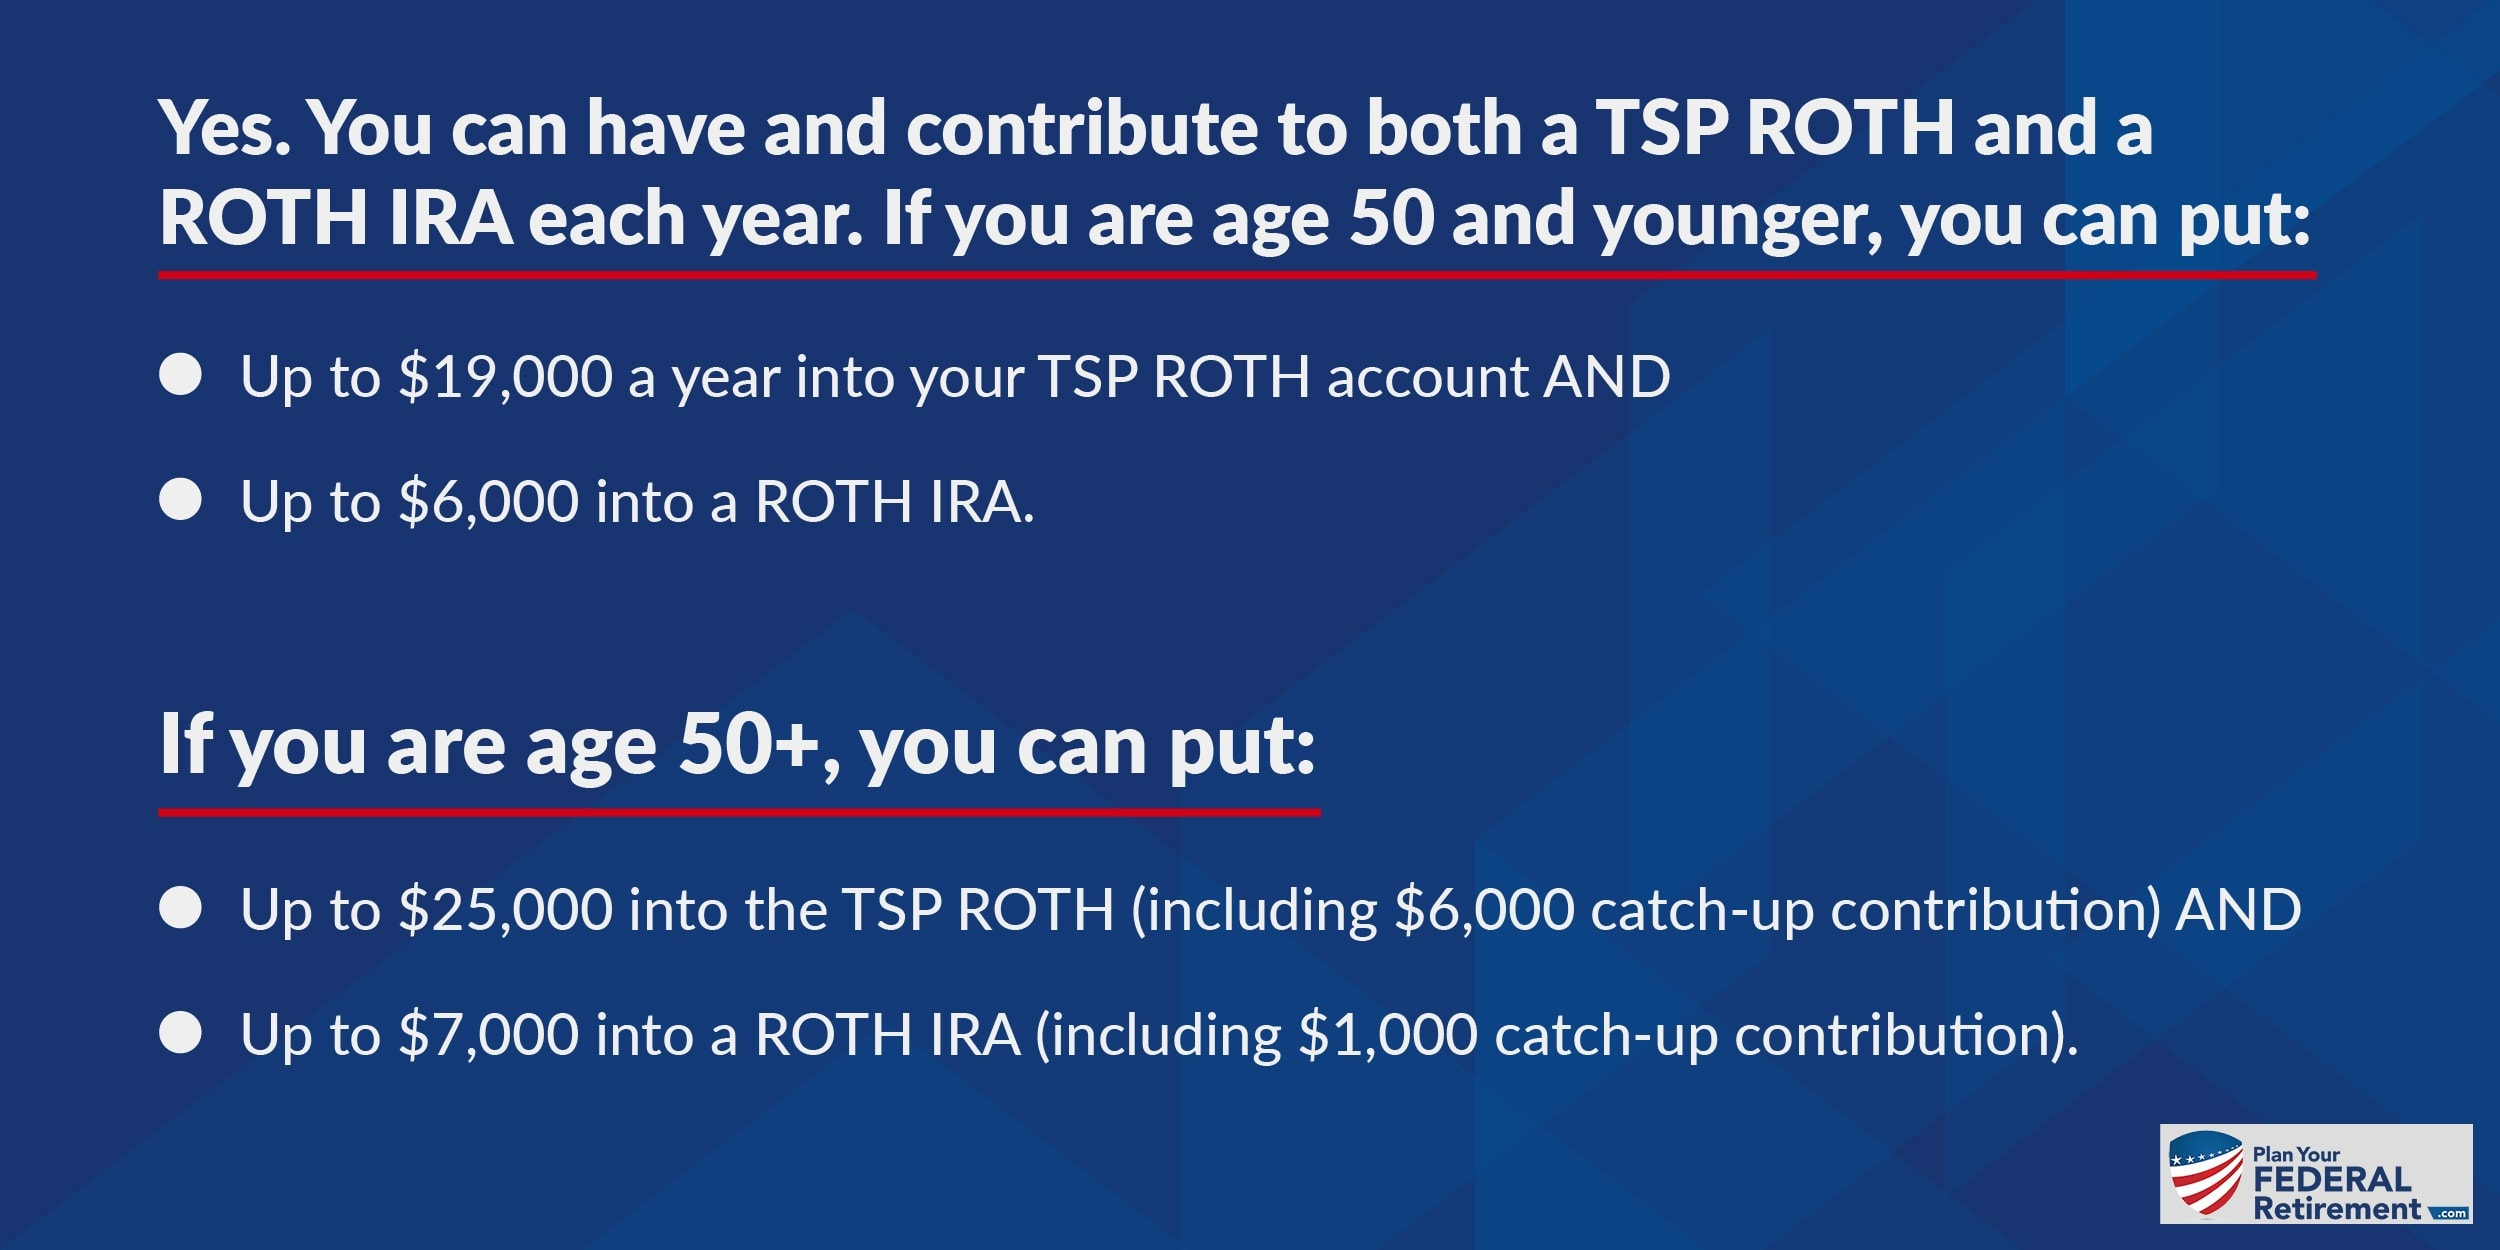 Have both ROTH TSP and ROTH IRA